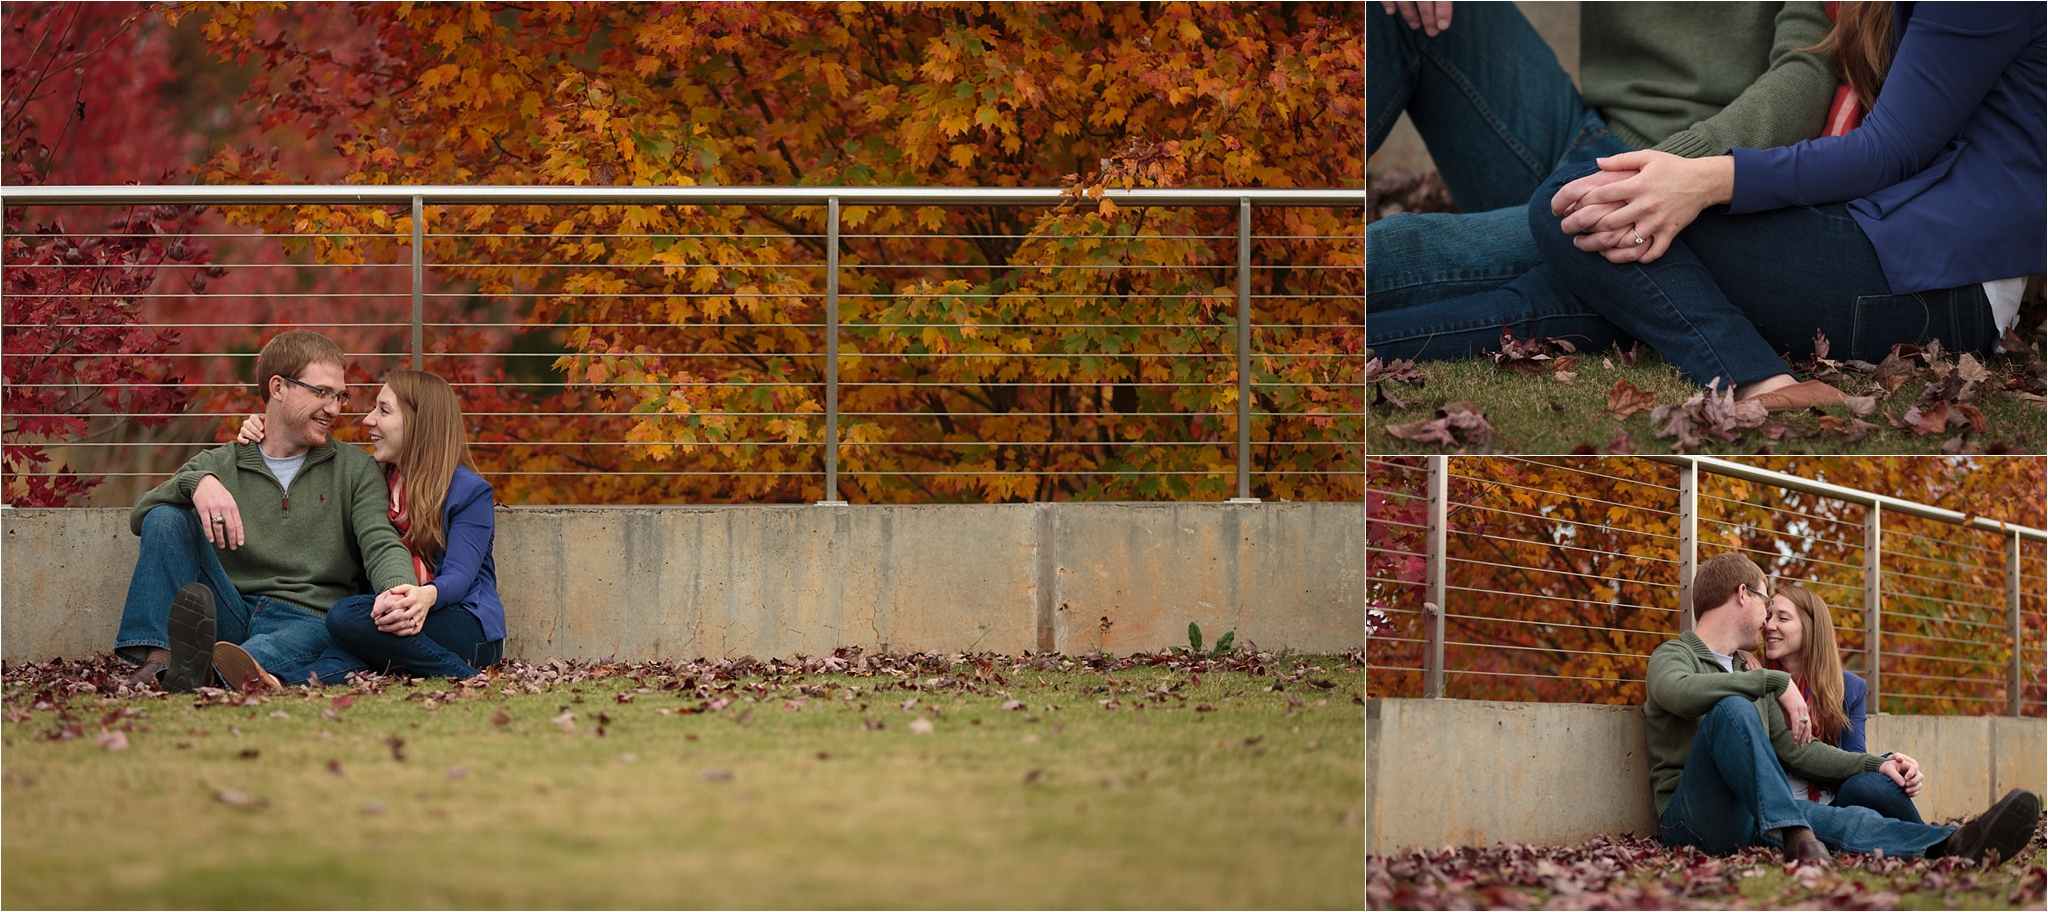 greenville-engagement-session-fall-colors-16_blog.jpg